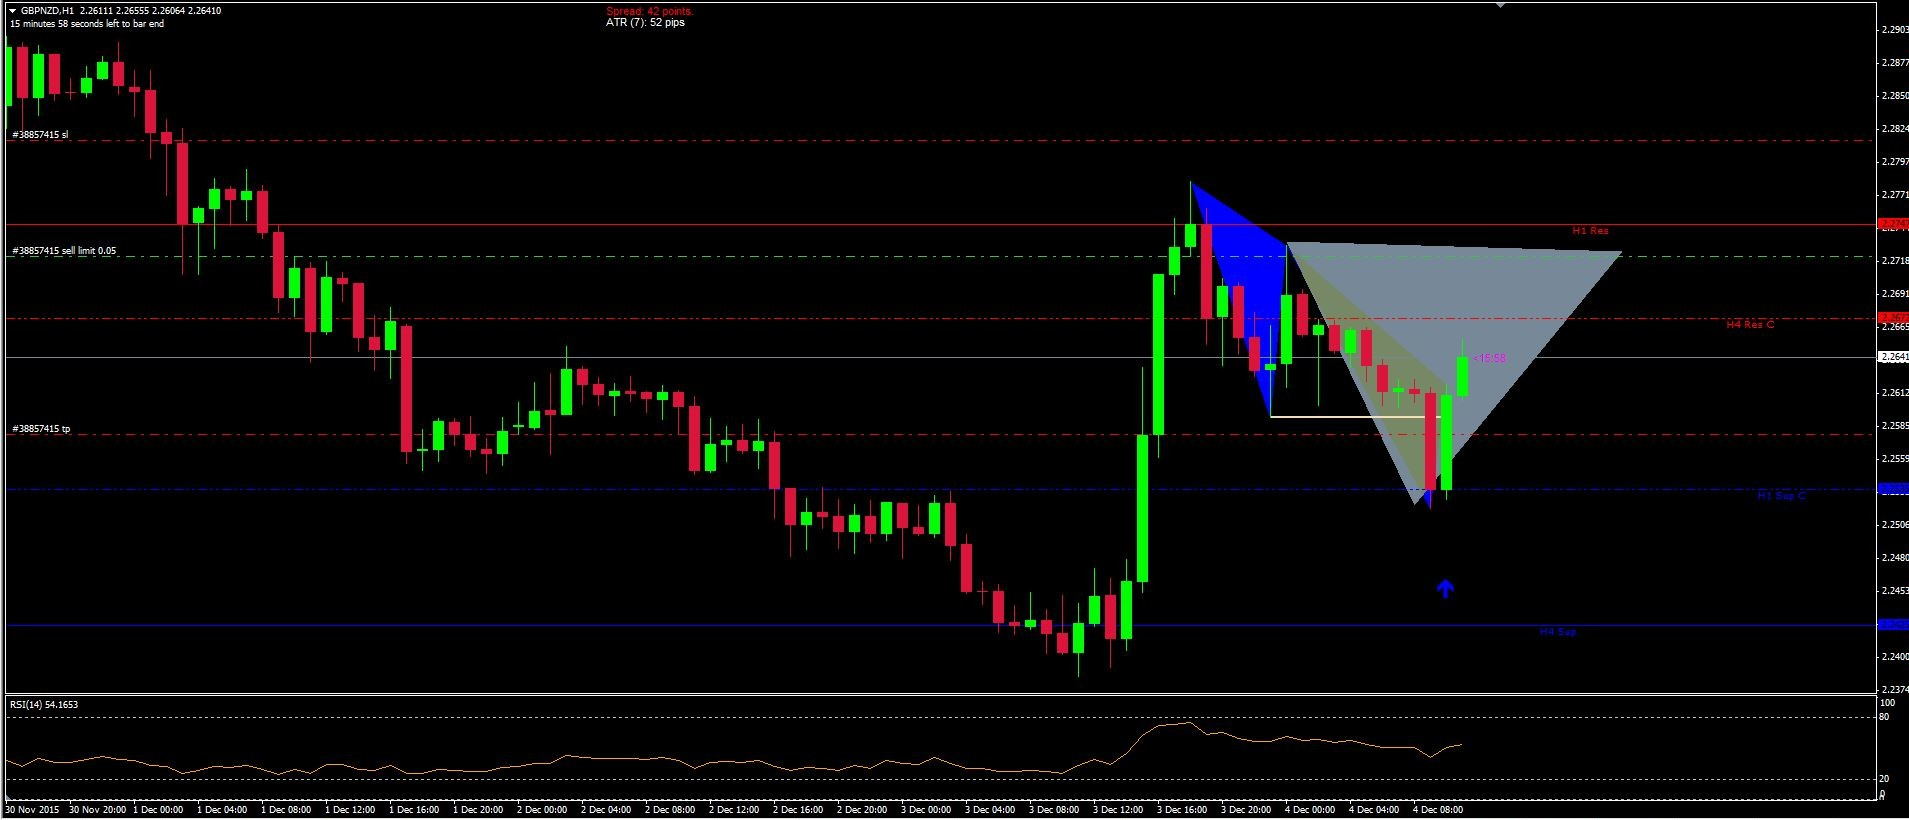 Gbp forex trading